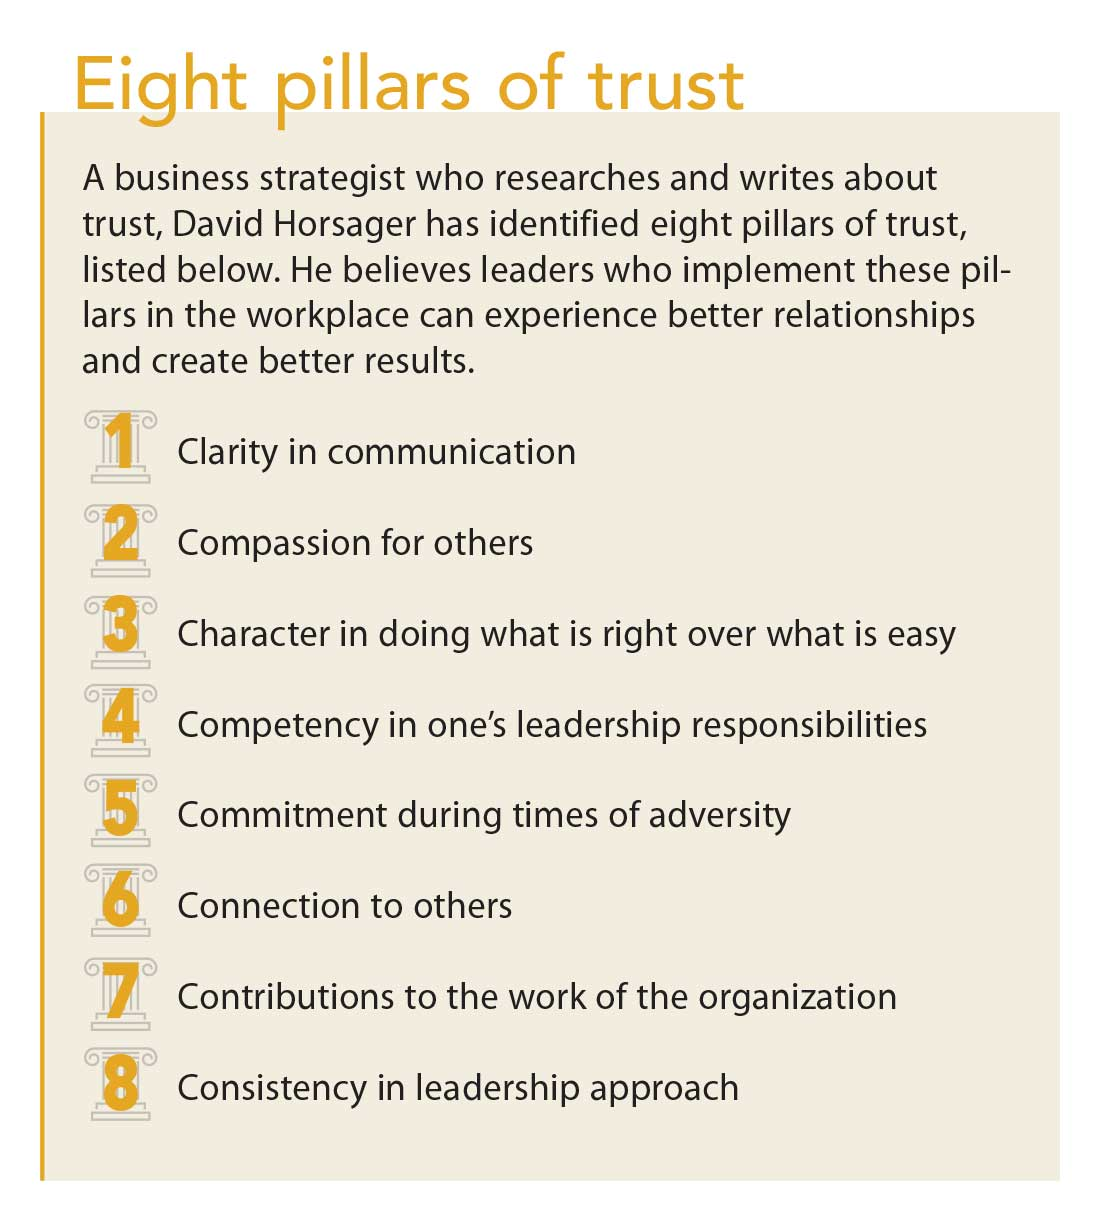 Without trust, leaders lose their influence and ability to retain team  members. Horsager views trust as a competitive edge shared by great leaders  and great ...